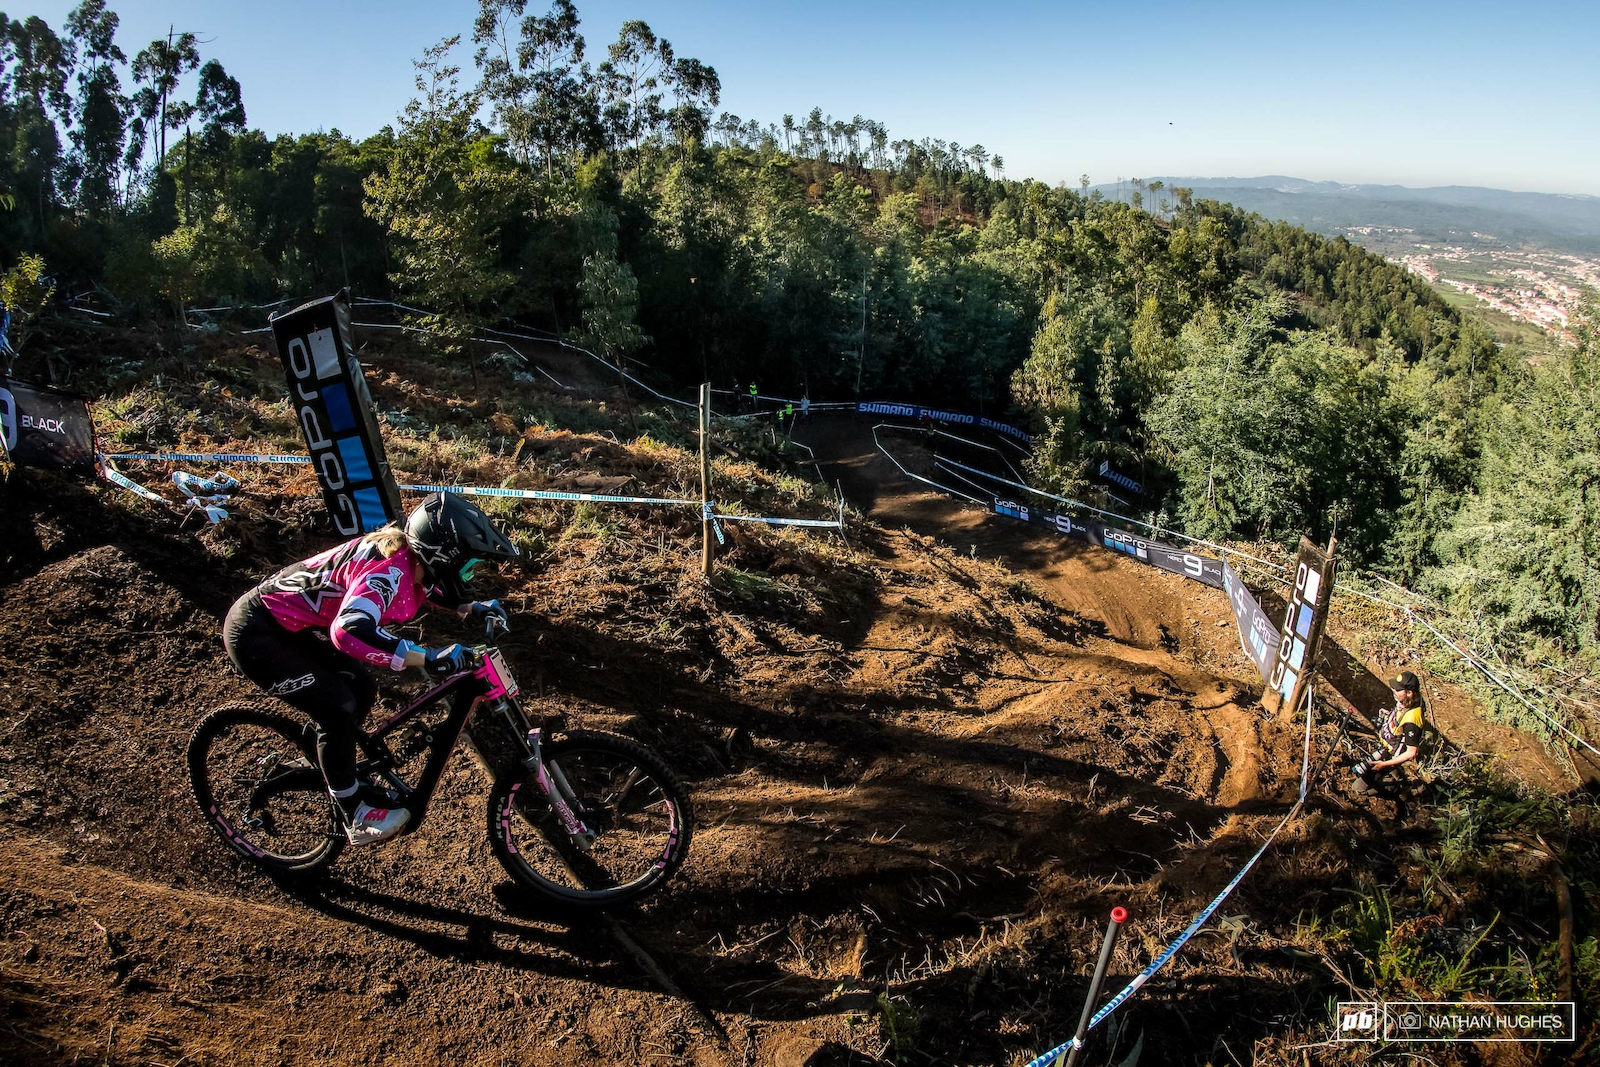 Tracey Hannah kept it safe and solid today but will porbably want a bigger score than 4th place on Sunday for her big WC send off run.